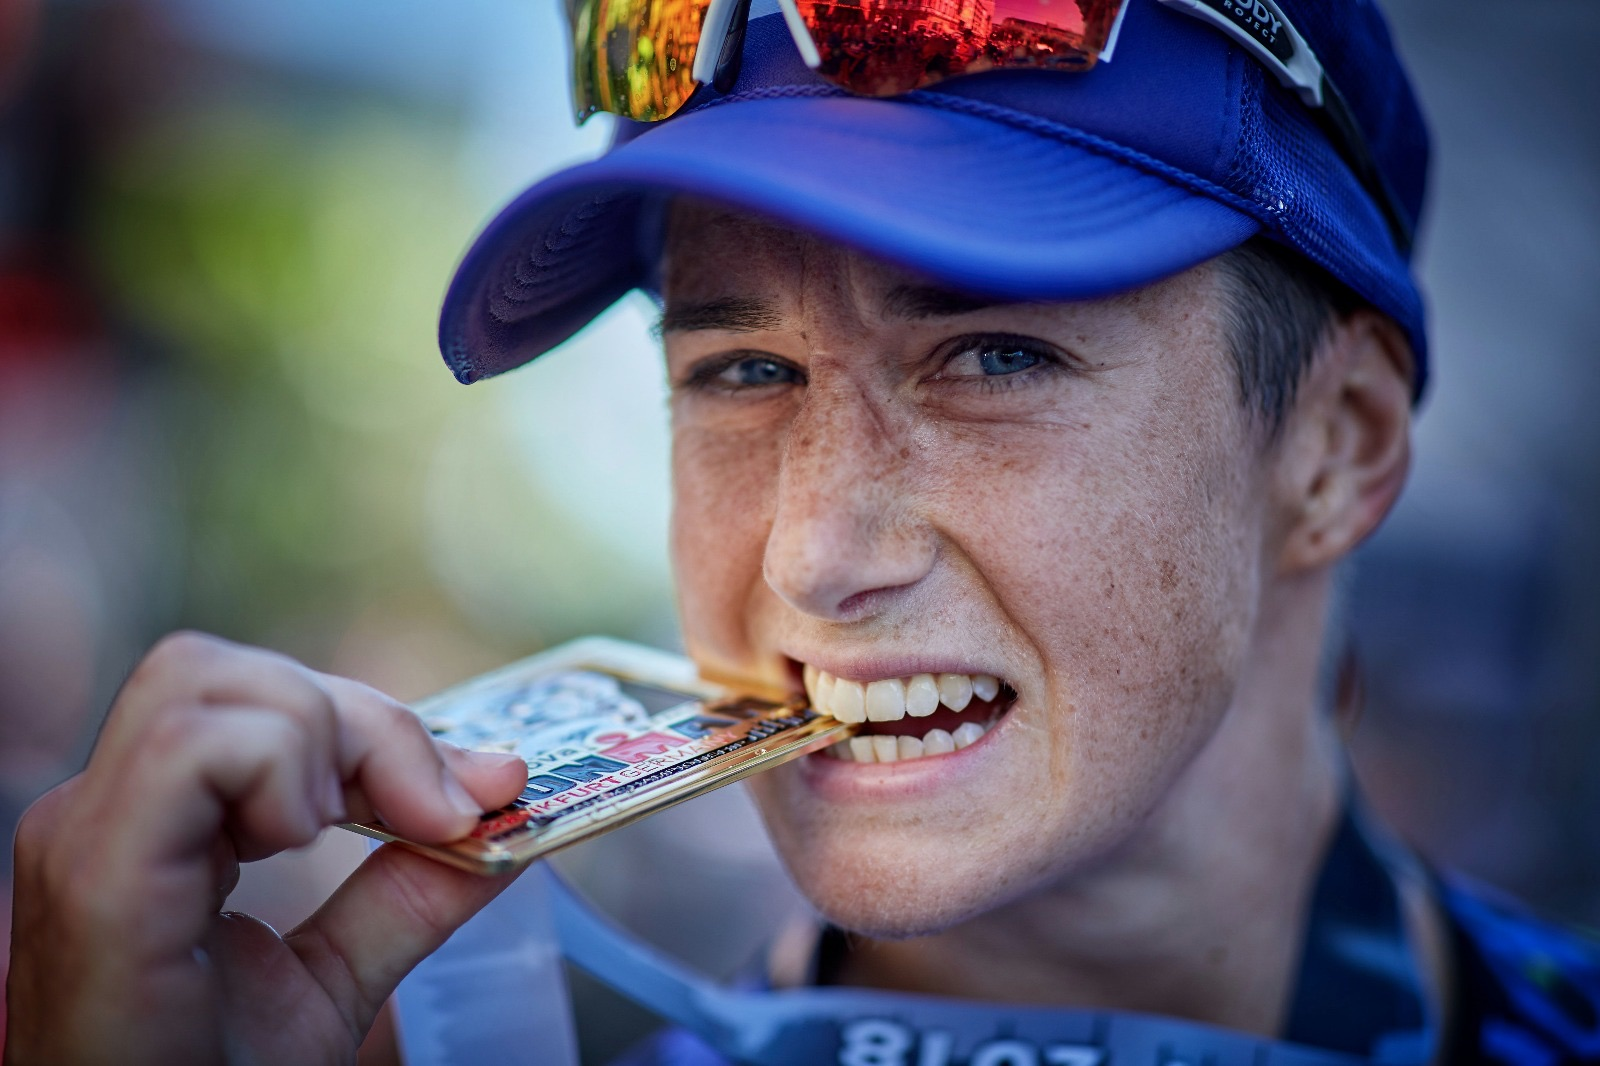 Medal: Pictures from: Isaak Papadopoulos (www.weitsprung.de)